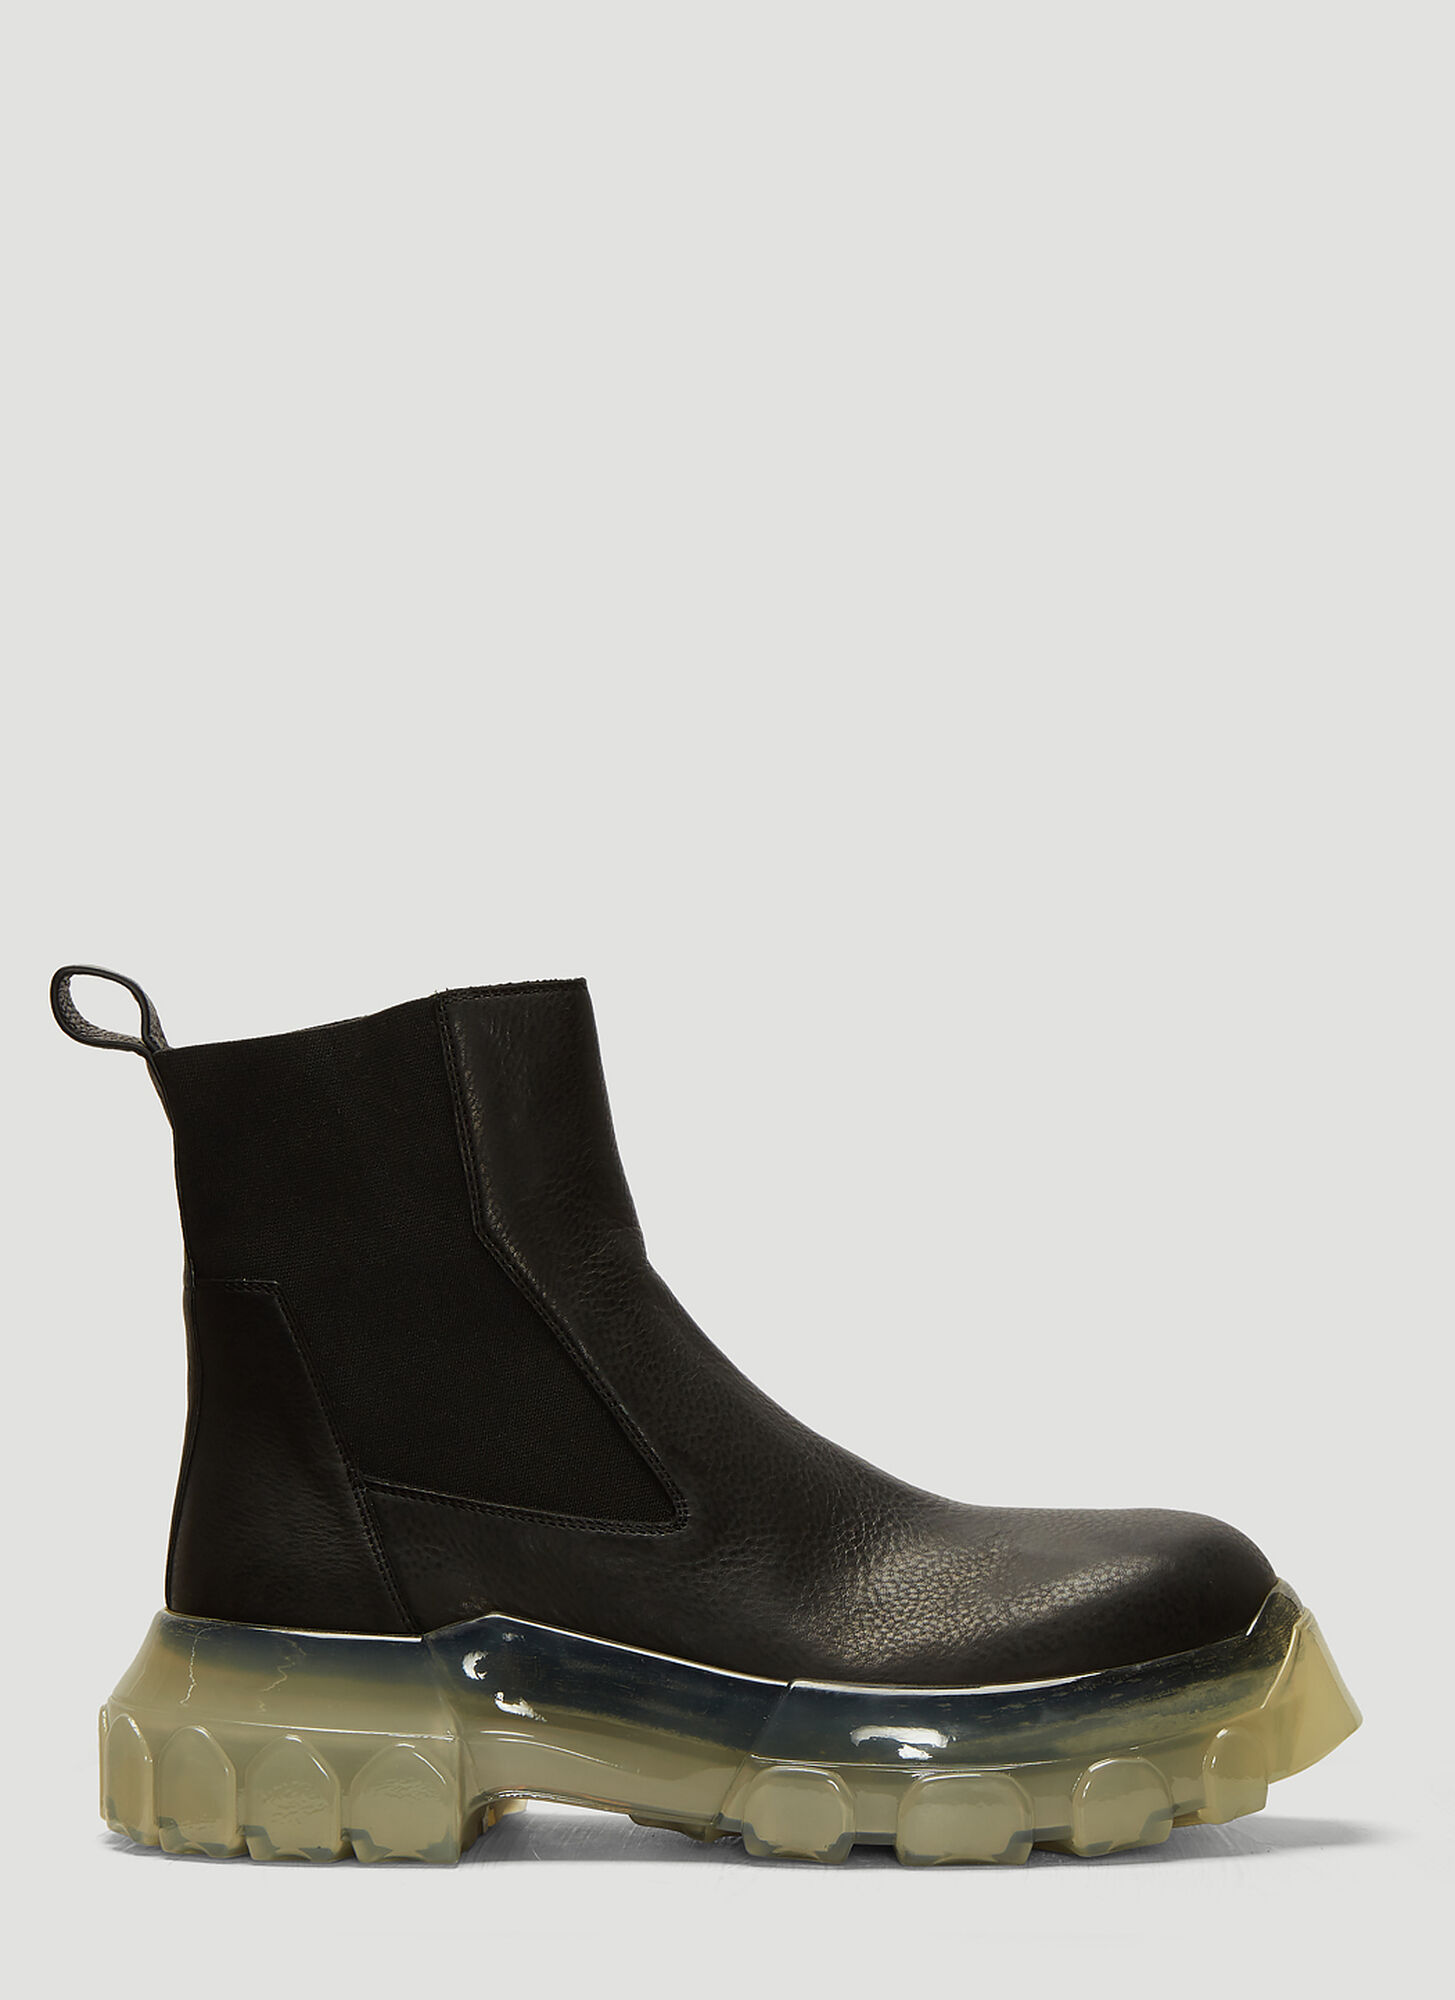 Rick Owens Bozo Tractor Beetle Boots in Black